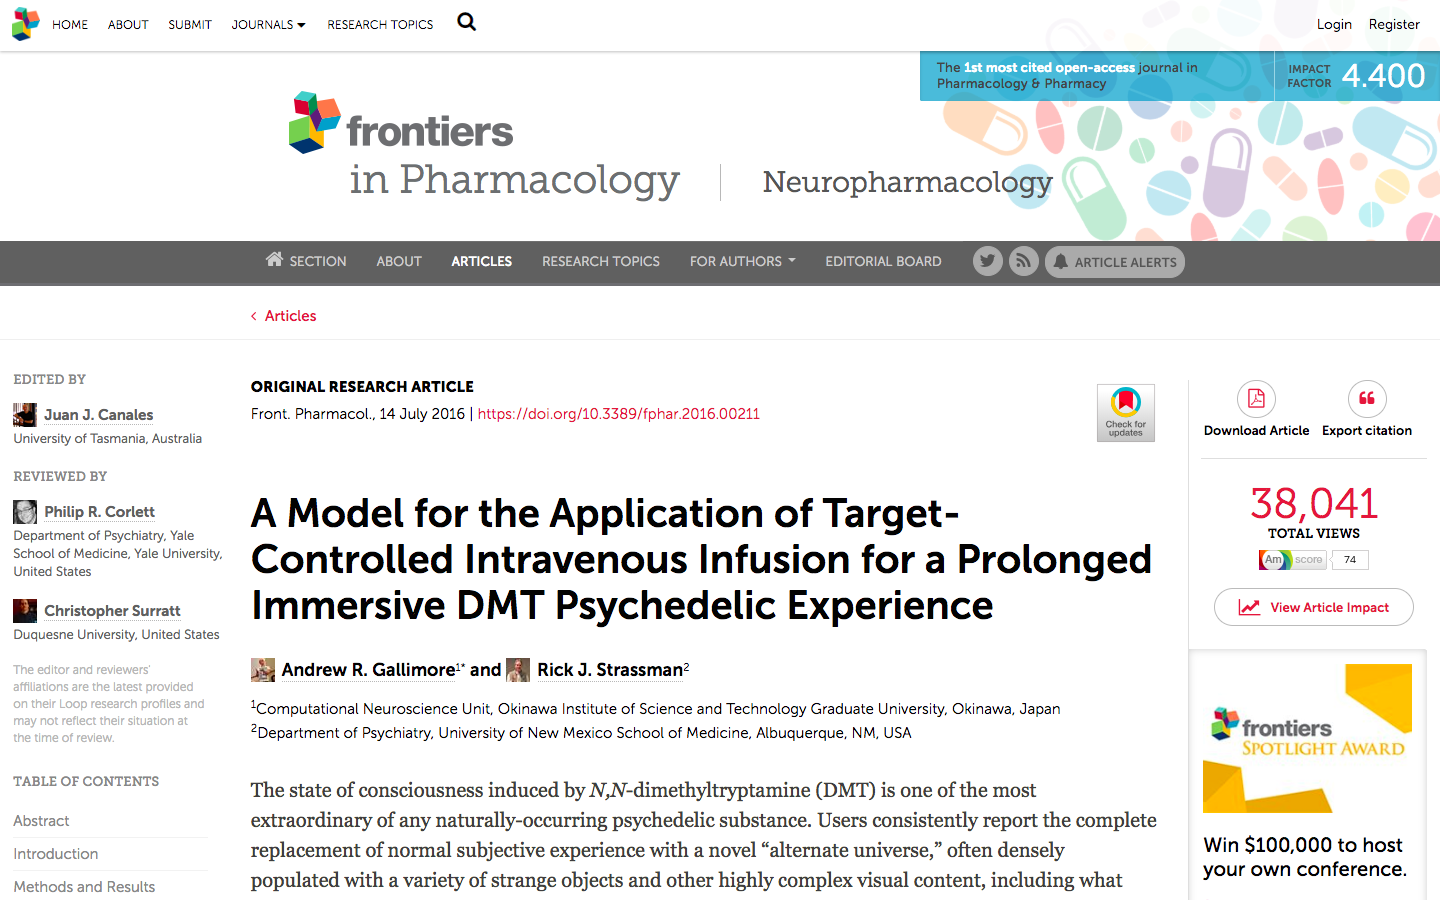 Frontiers |  A Model for the Application of Target-Controlled Intravenous Infusion for a Prolonged Immersive DMT Psychedelic Experience